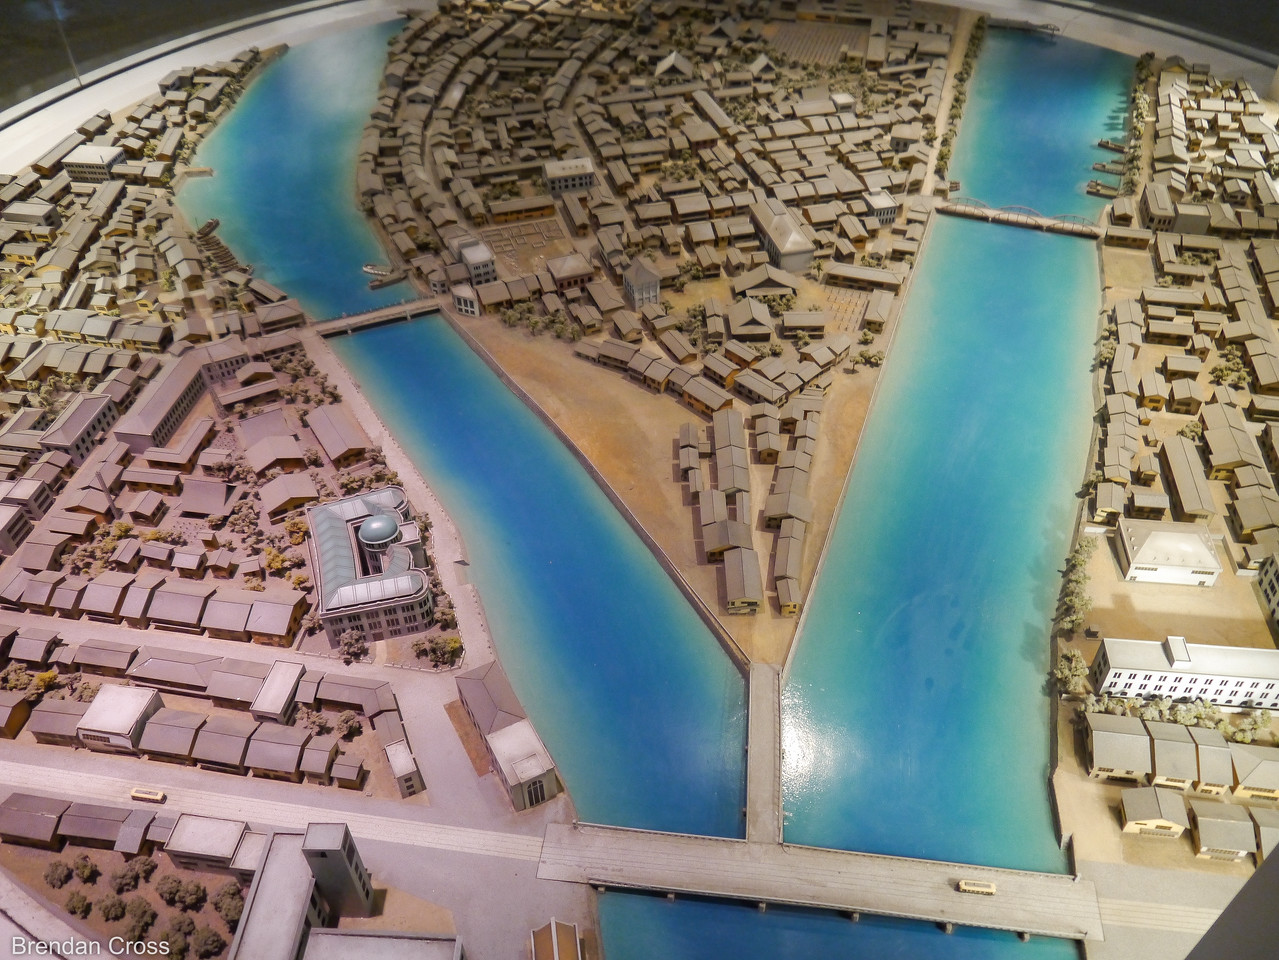 City Model, Hiroshima Peace Memorial Museum